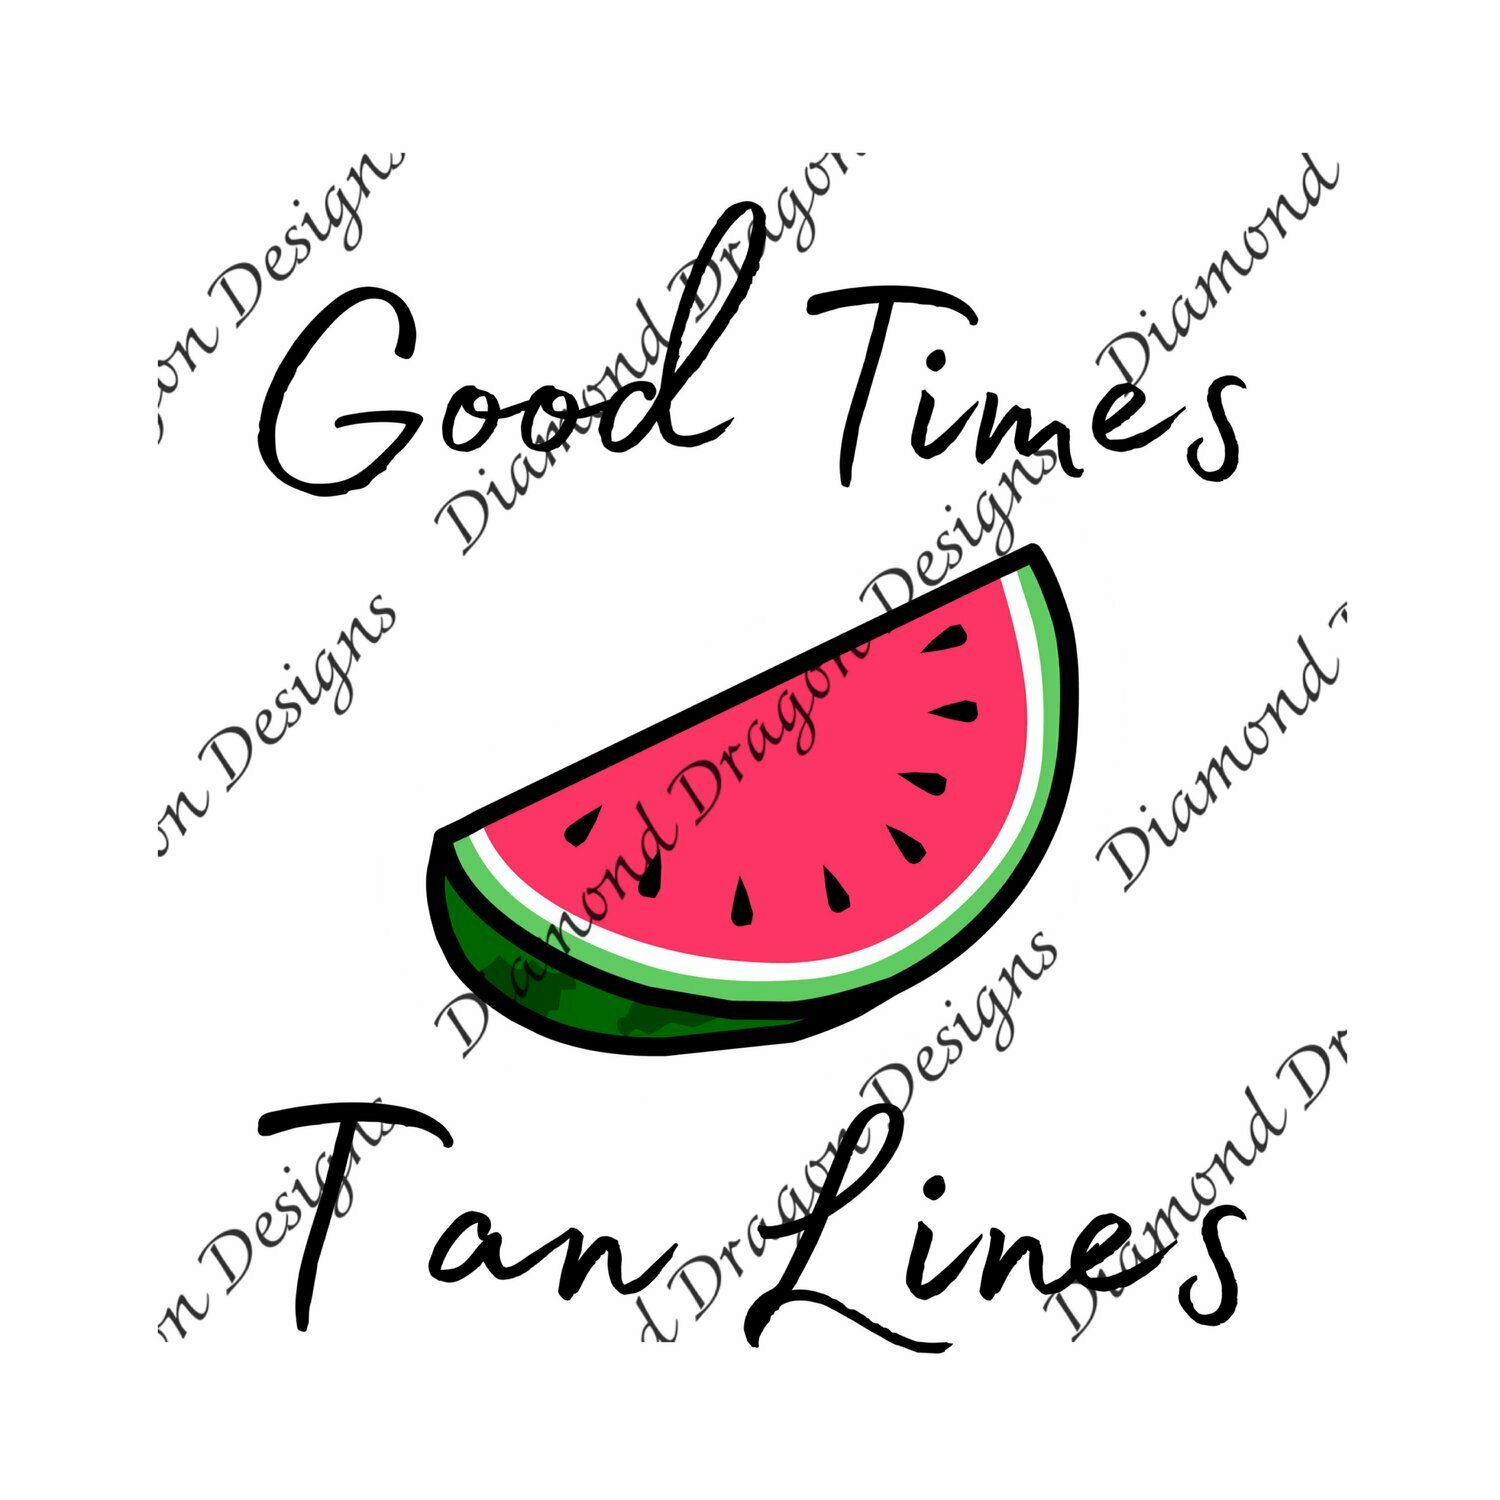 Watermelon - Summer, Summer time, Good Time Tan Lines, Quote, Watermelon Slice, Digital Image